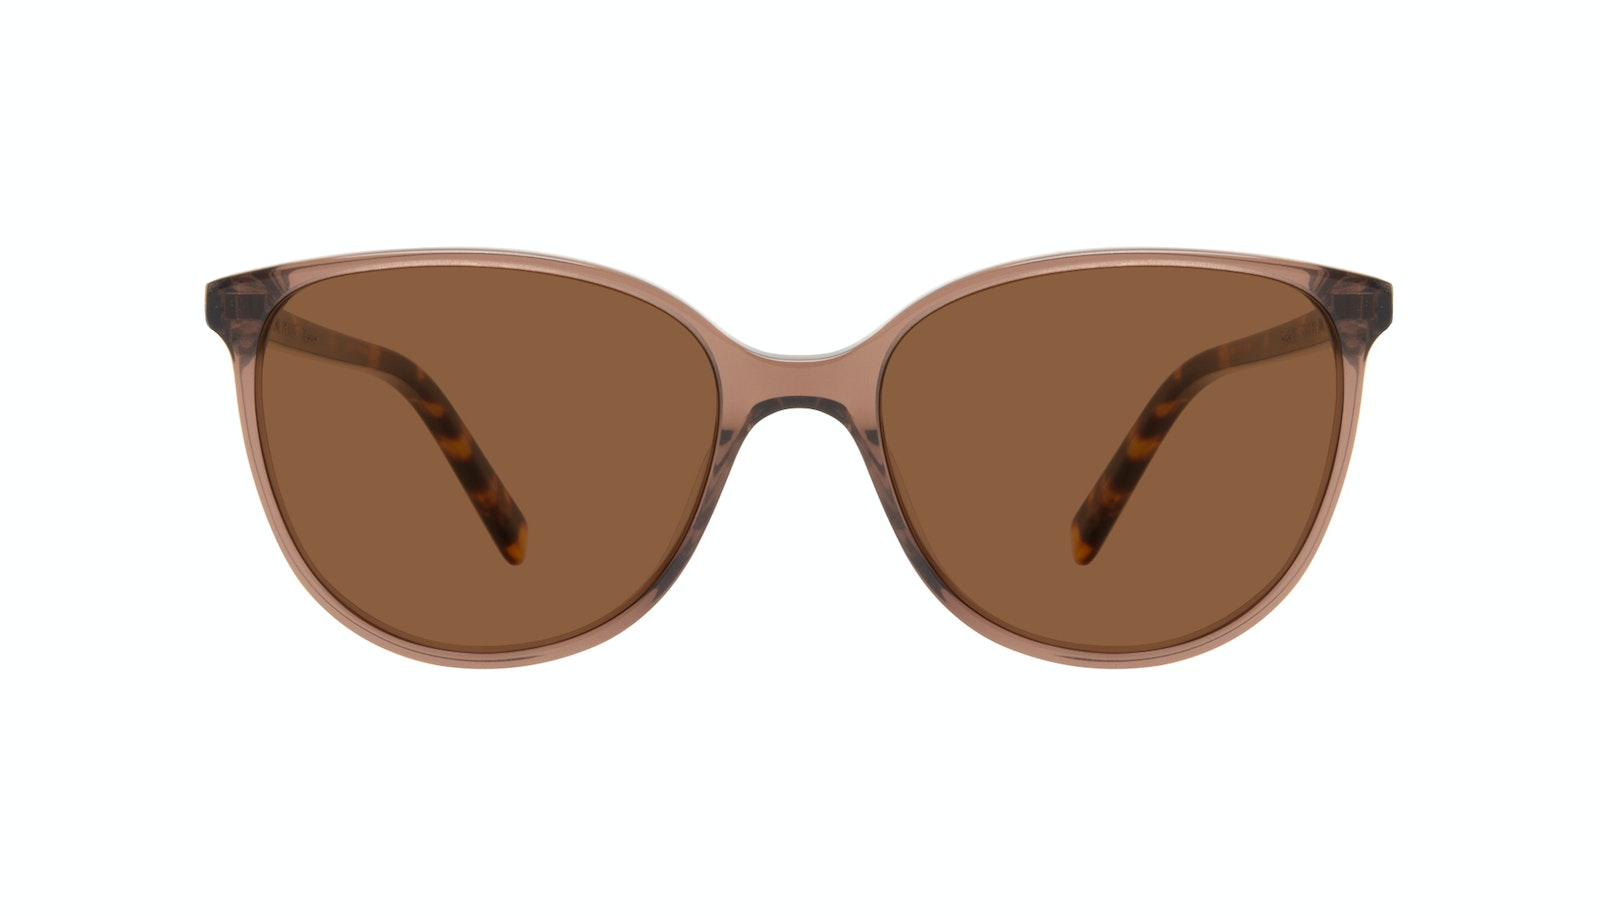 Affordable Fashion Glasses Round Sunglasses Women Imagine Petite Terra